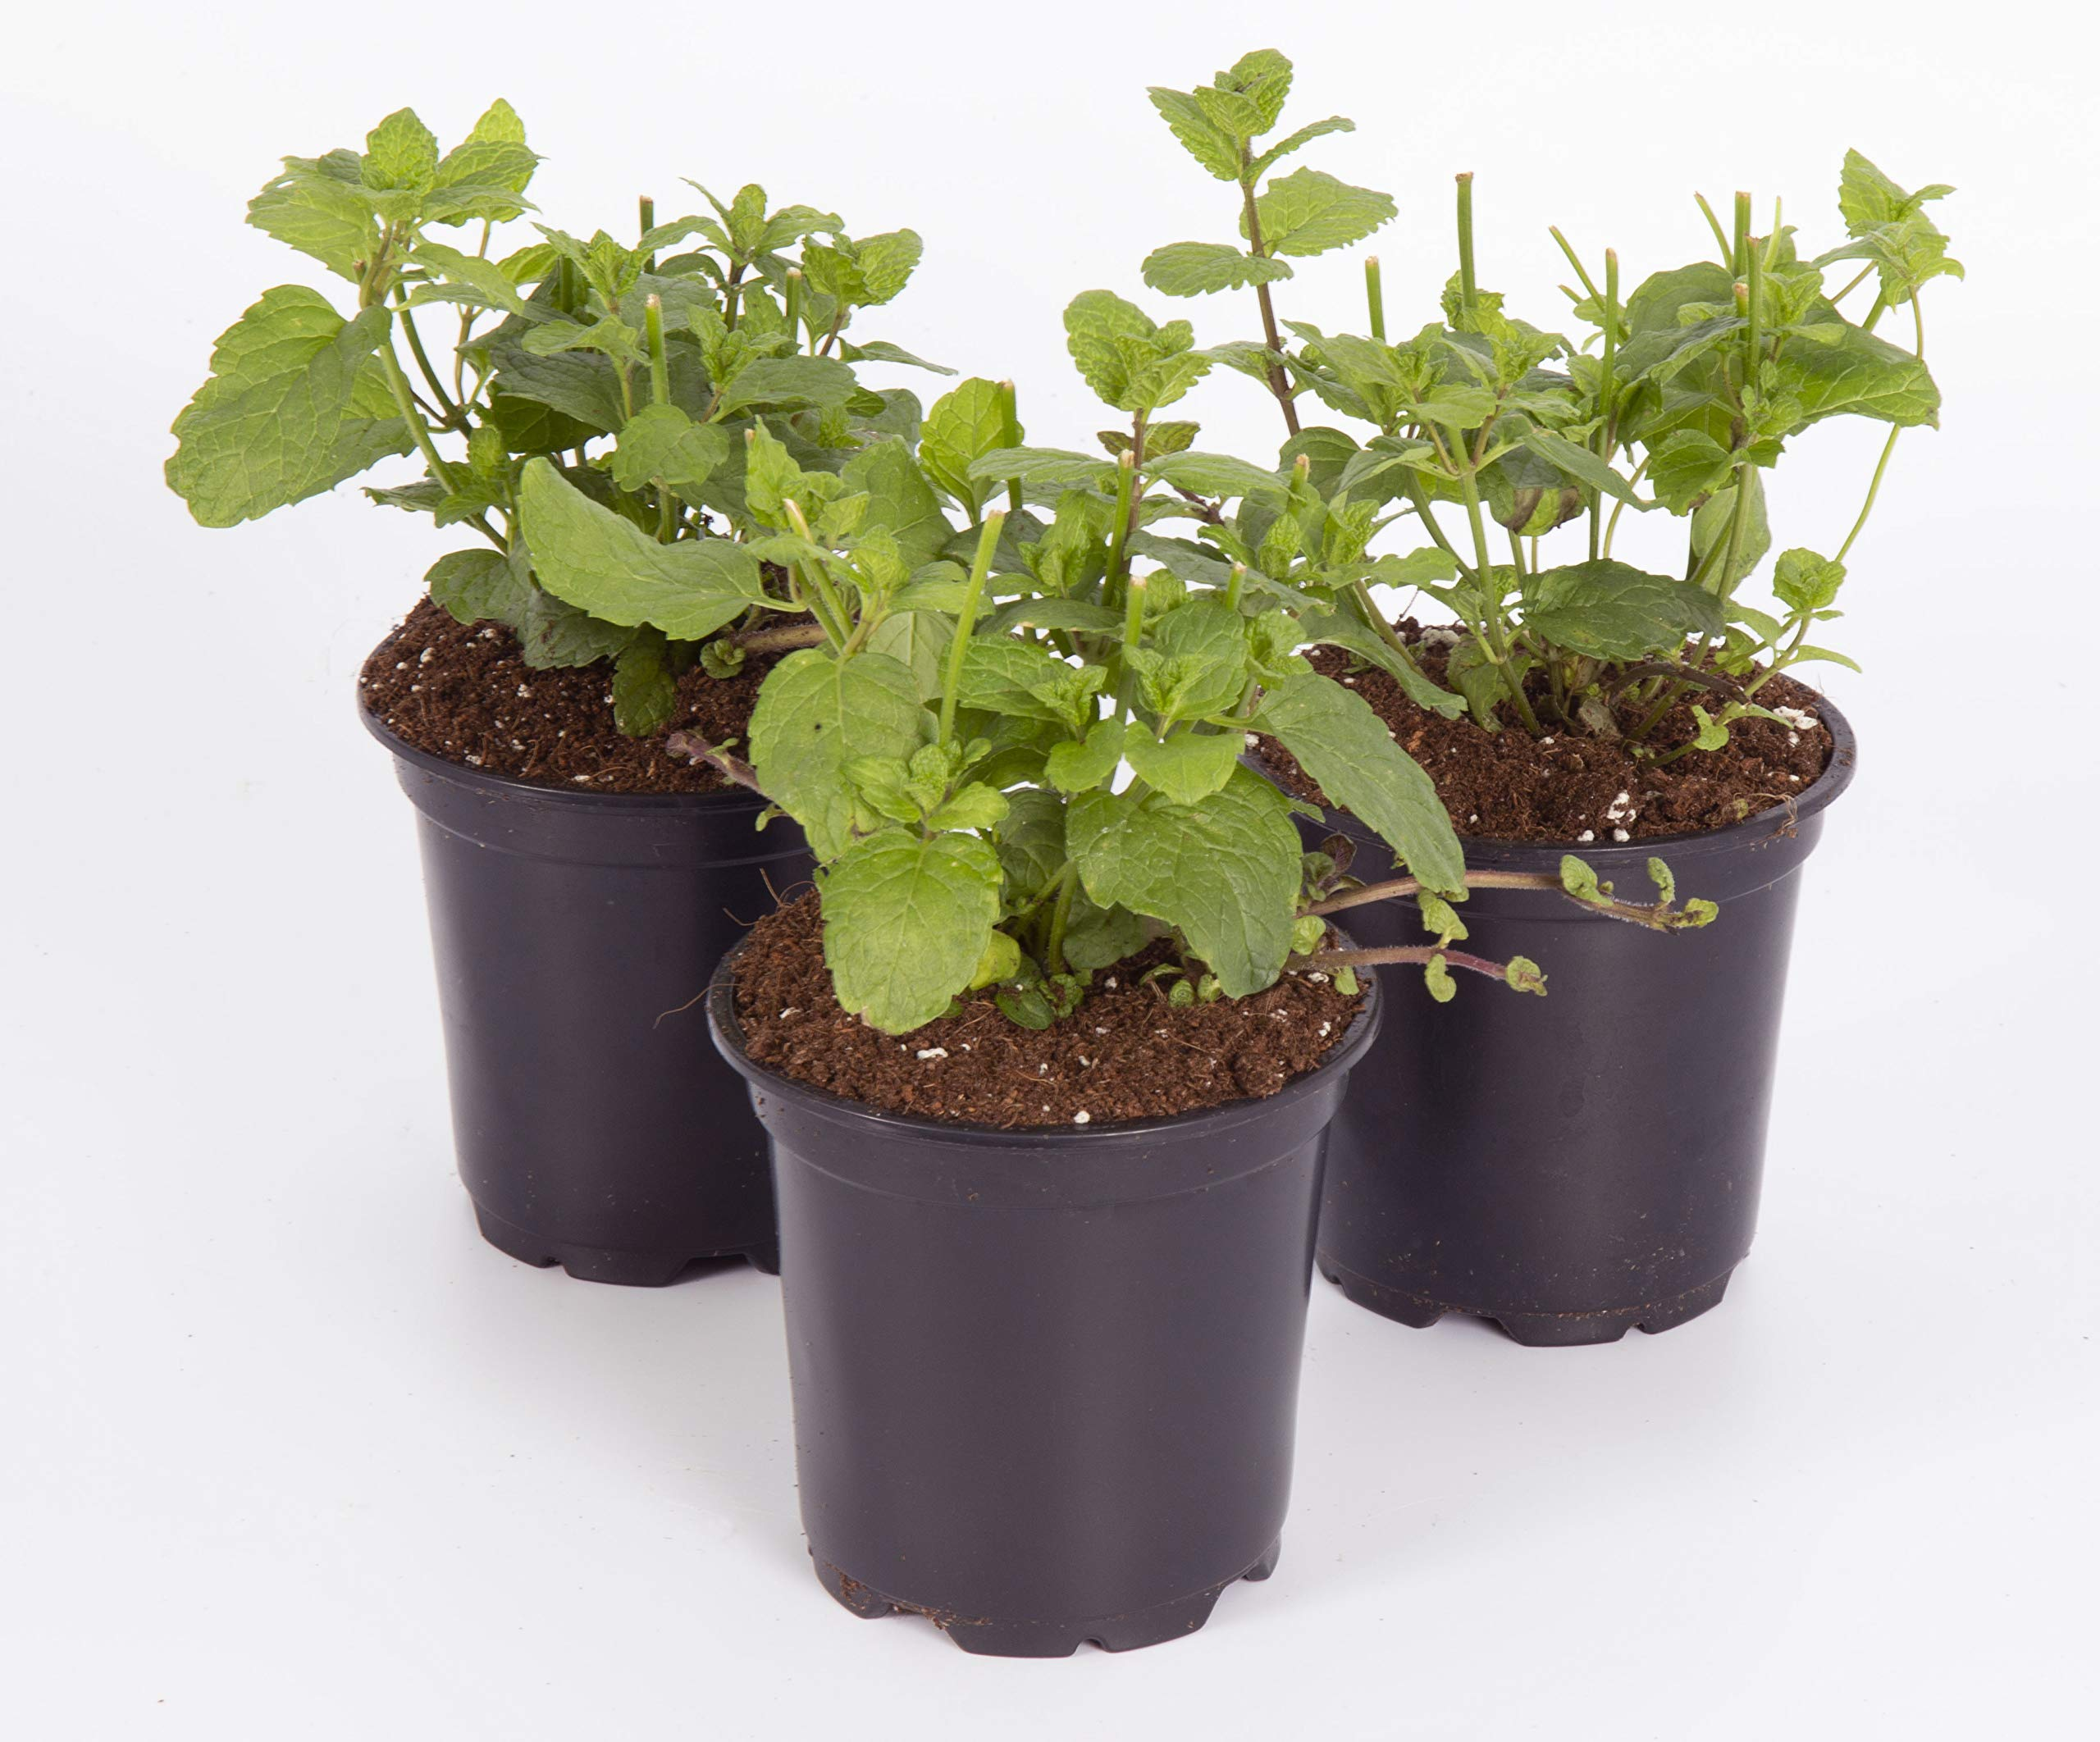 The Three Company Live Plant Aromatic Herb 4'' Mint (3 Pack), Full and Healthy, Naturally Enhances Health